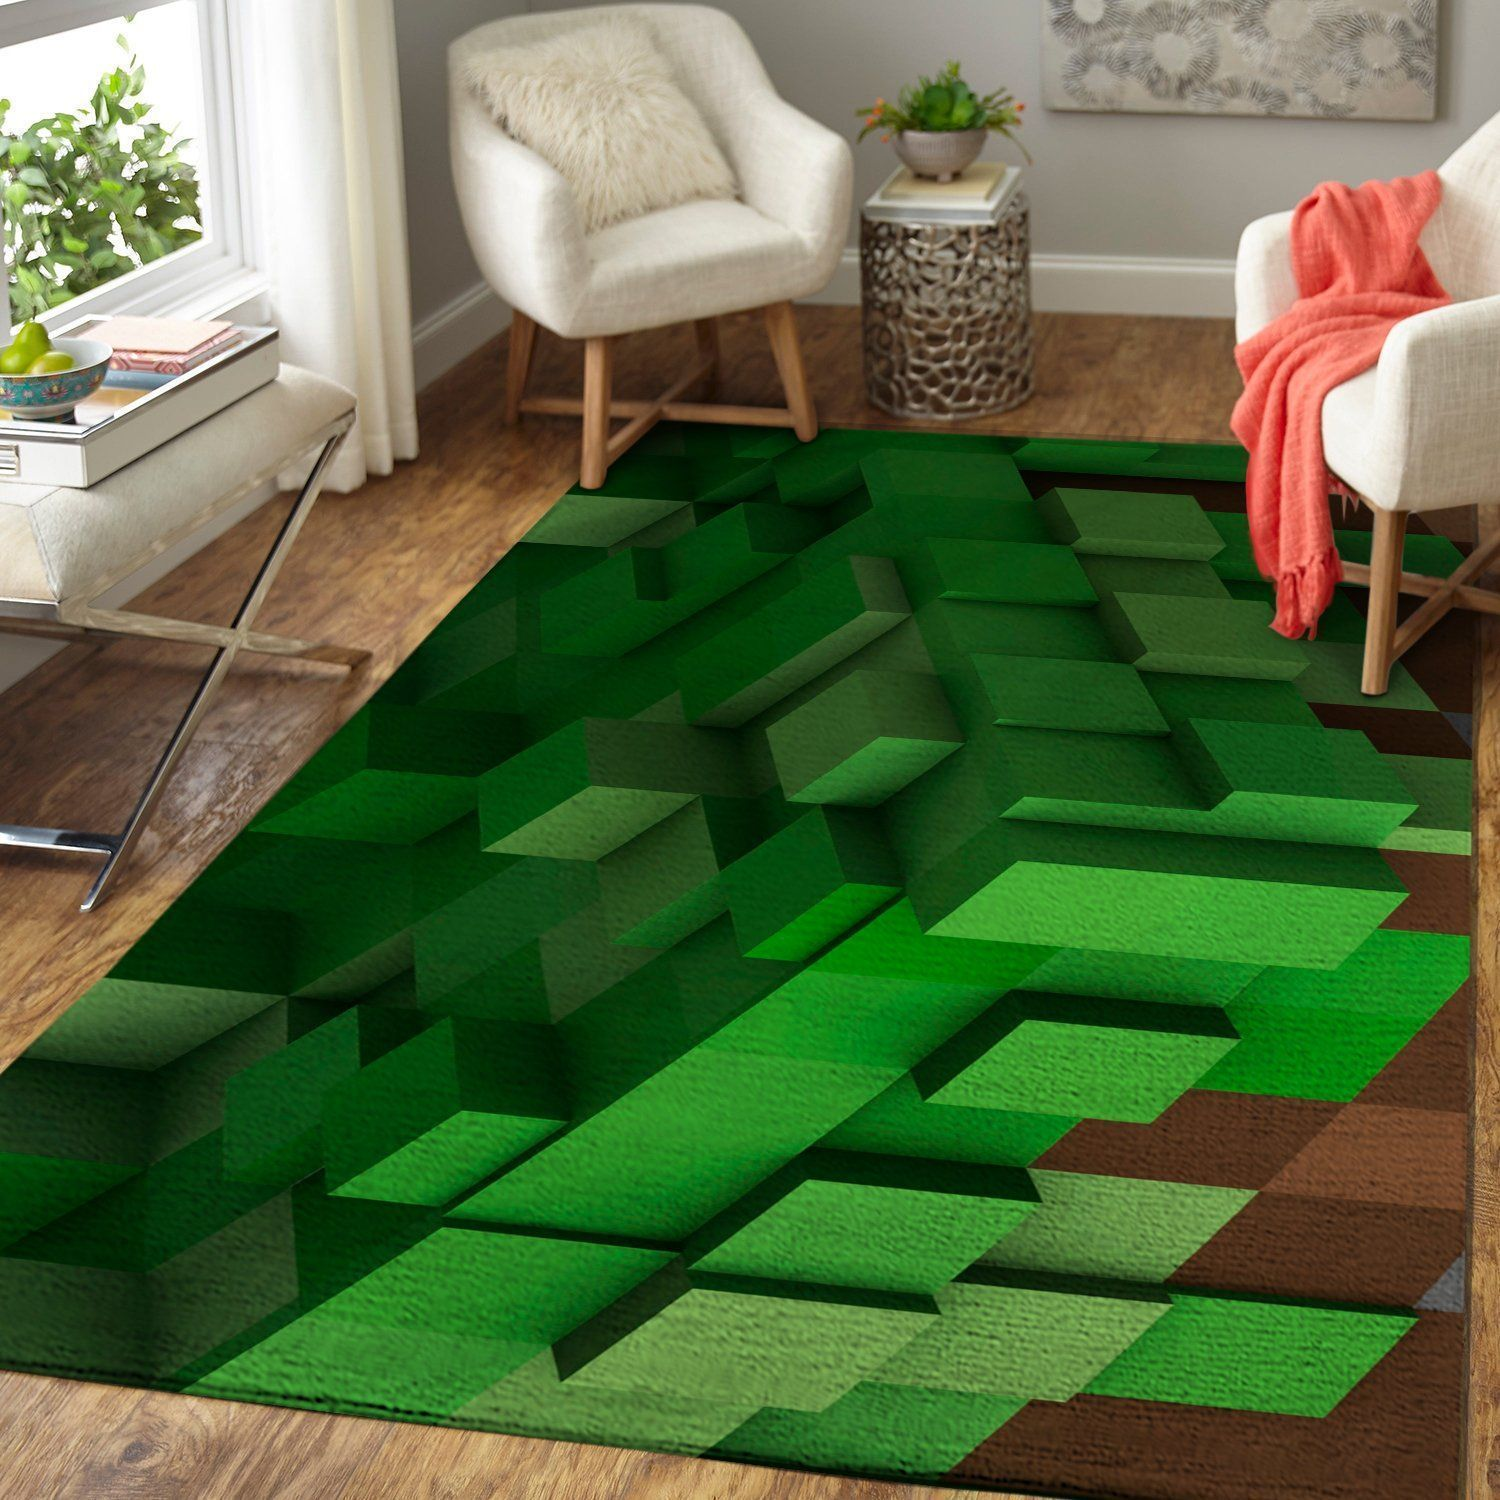 Minecraft Area Rug Video Game Carpet, Gamer Living Room Rugs, Floor Decor M301013